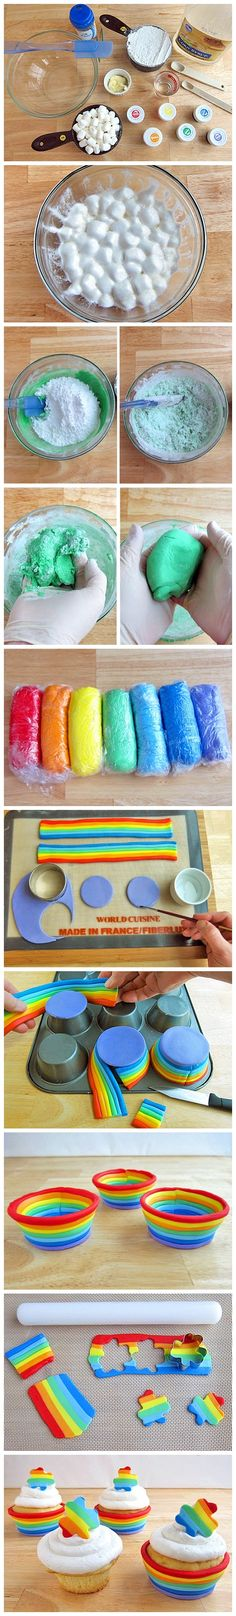 Edible Fondant Rainbow Cupcake Wrappers Recipe and How-To.make fondant! Fondant Cupcakes, Marshmallow Fondant, Cupcake Cookies, Fondant Rainbow, Rainbow Cupcakes, Cupcakes Kids, Cake Decorating Tips, Cookie Decorating, Decoration Patisserie